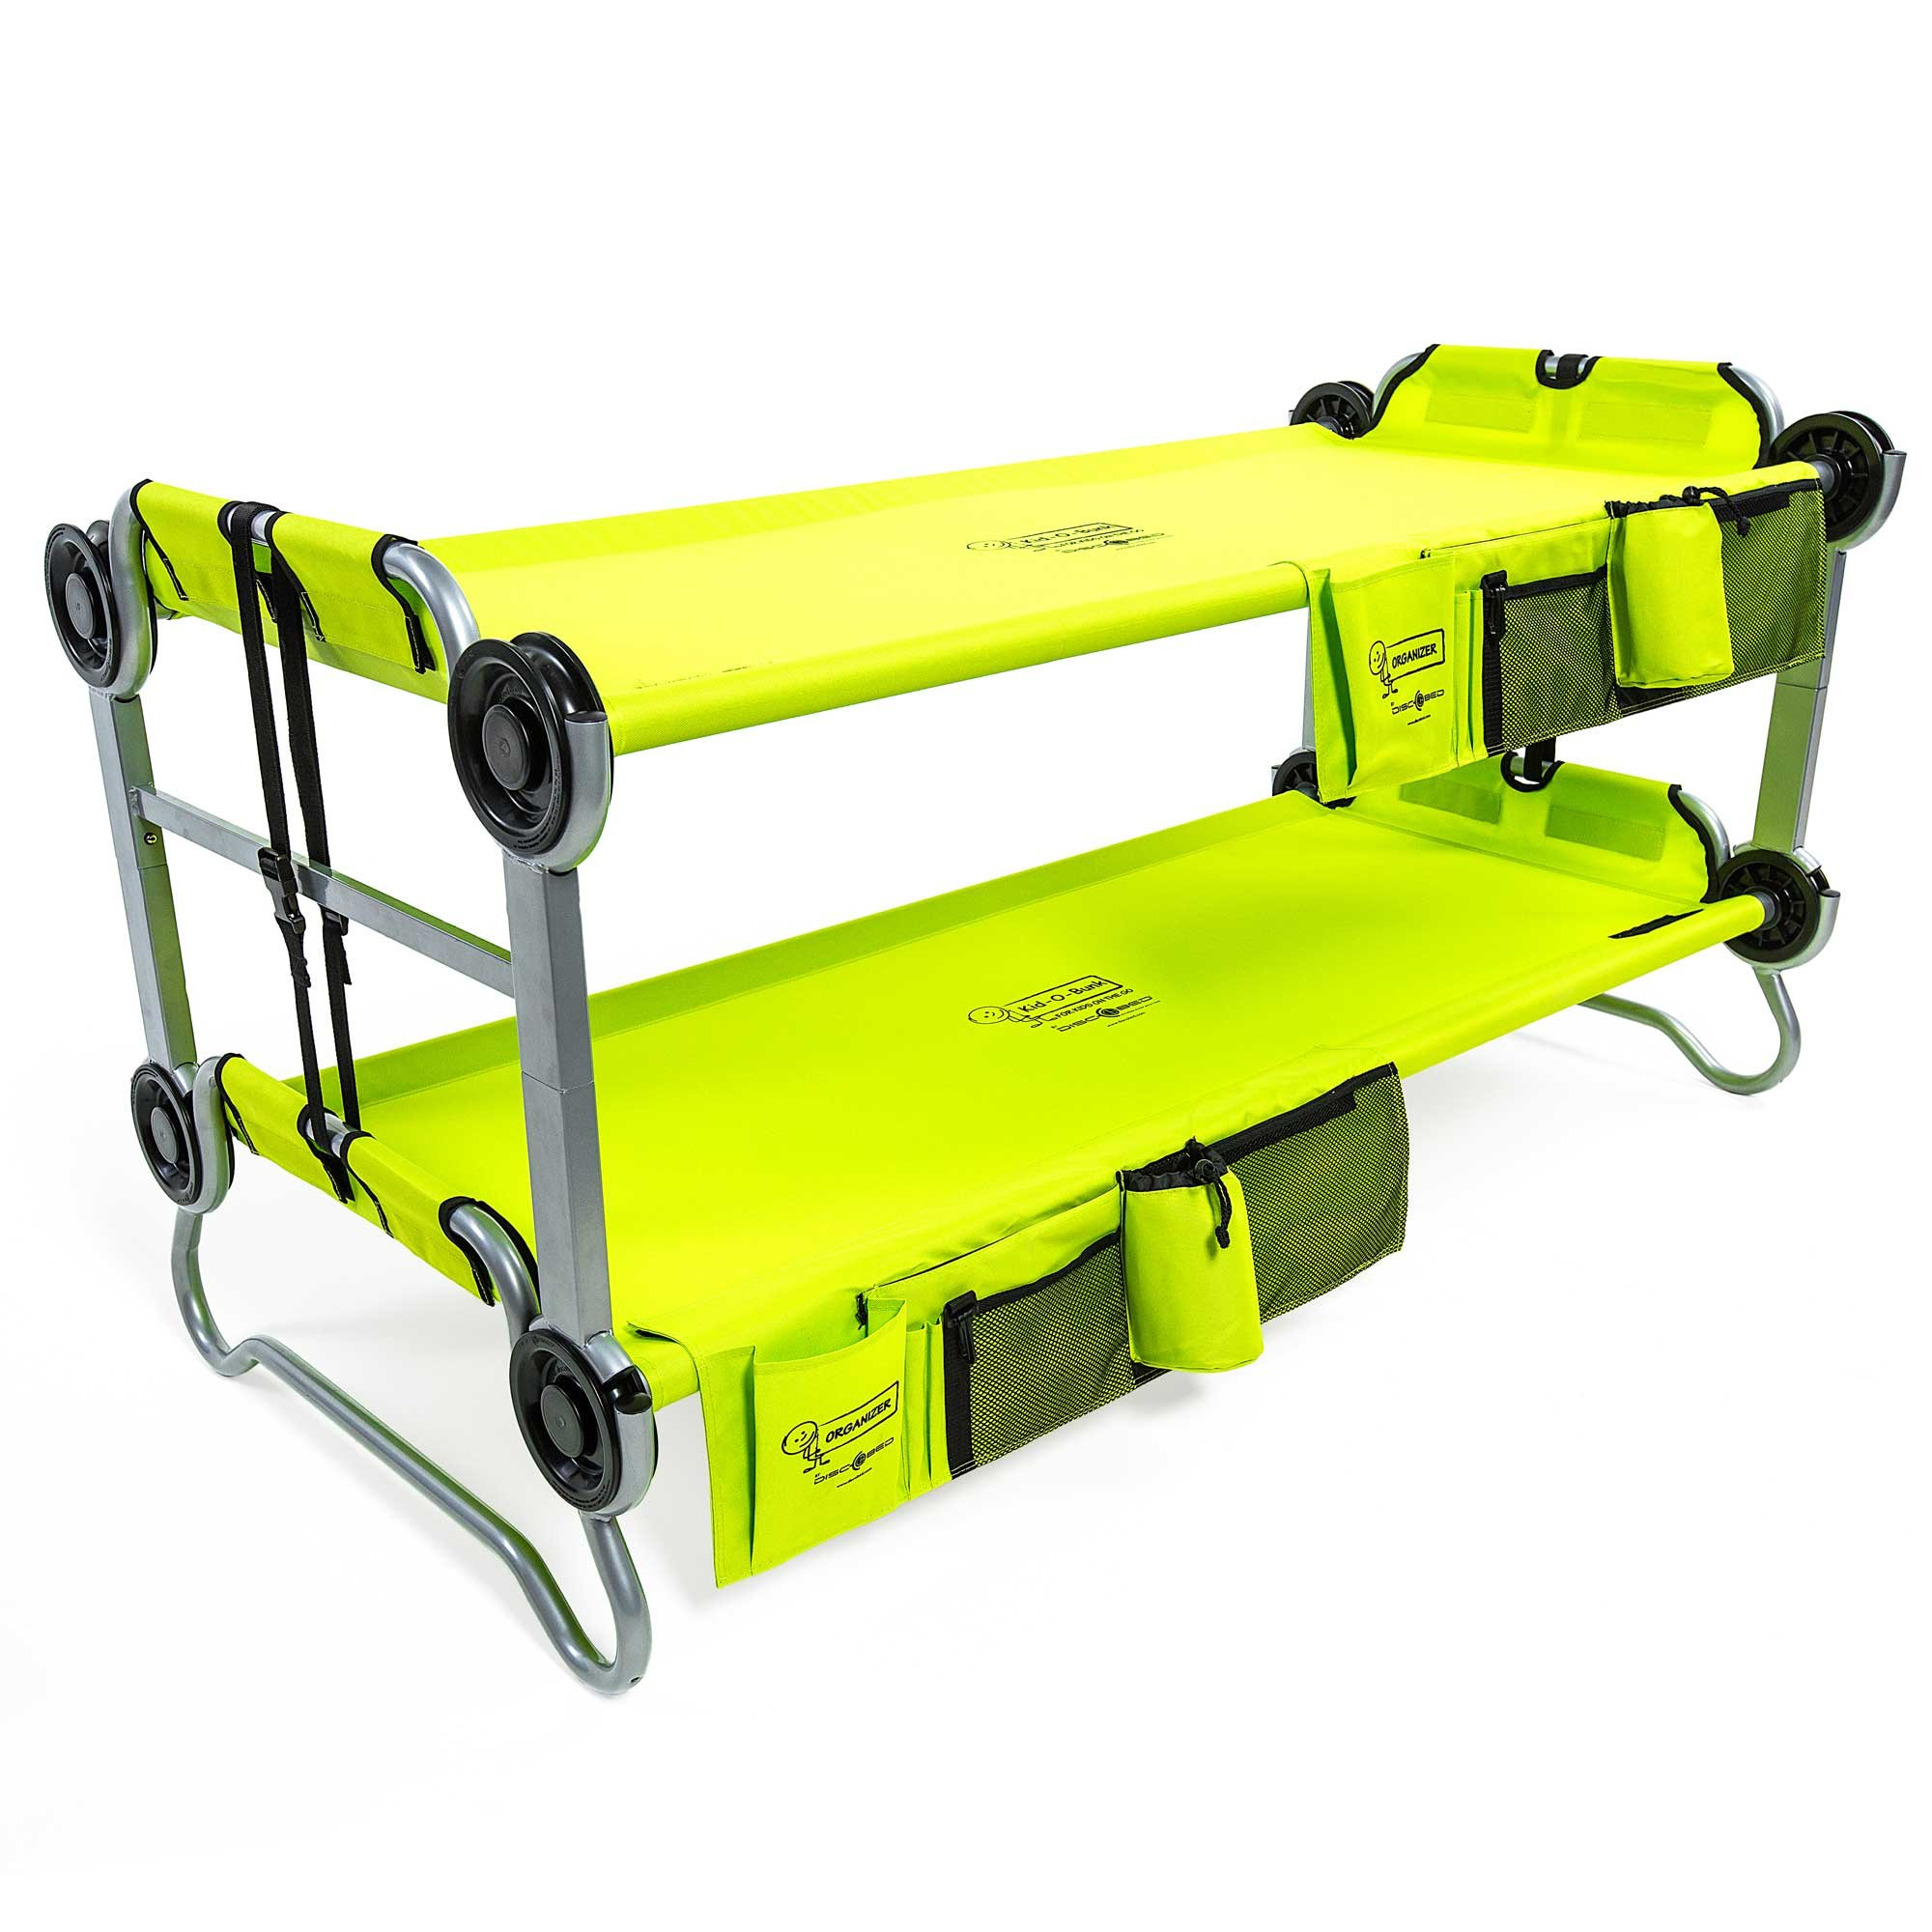 Disc-O-Bed Youth Kid-O-Bunk Benchable Camping Cot with Organizers, Lime Green